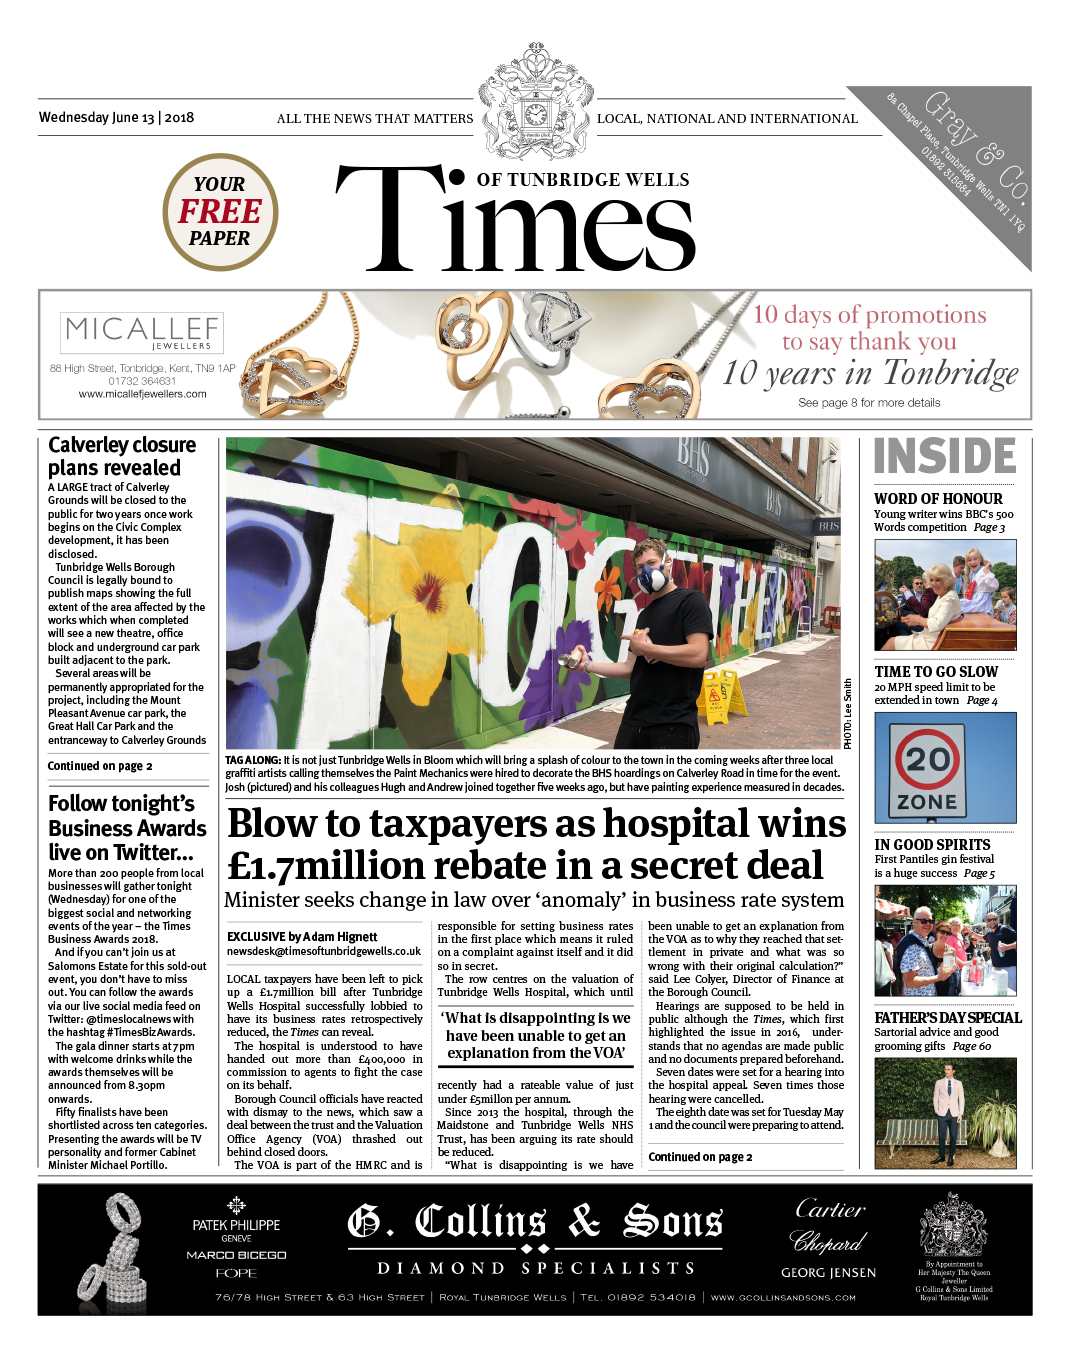 Read the Times of Tunbridge Wells 13th June 2018